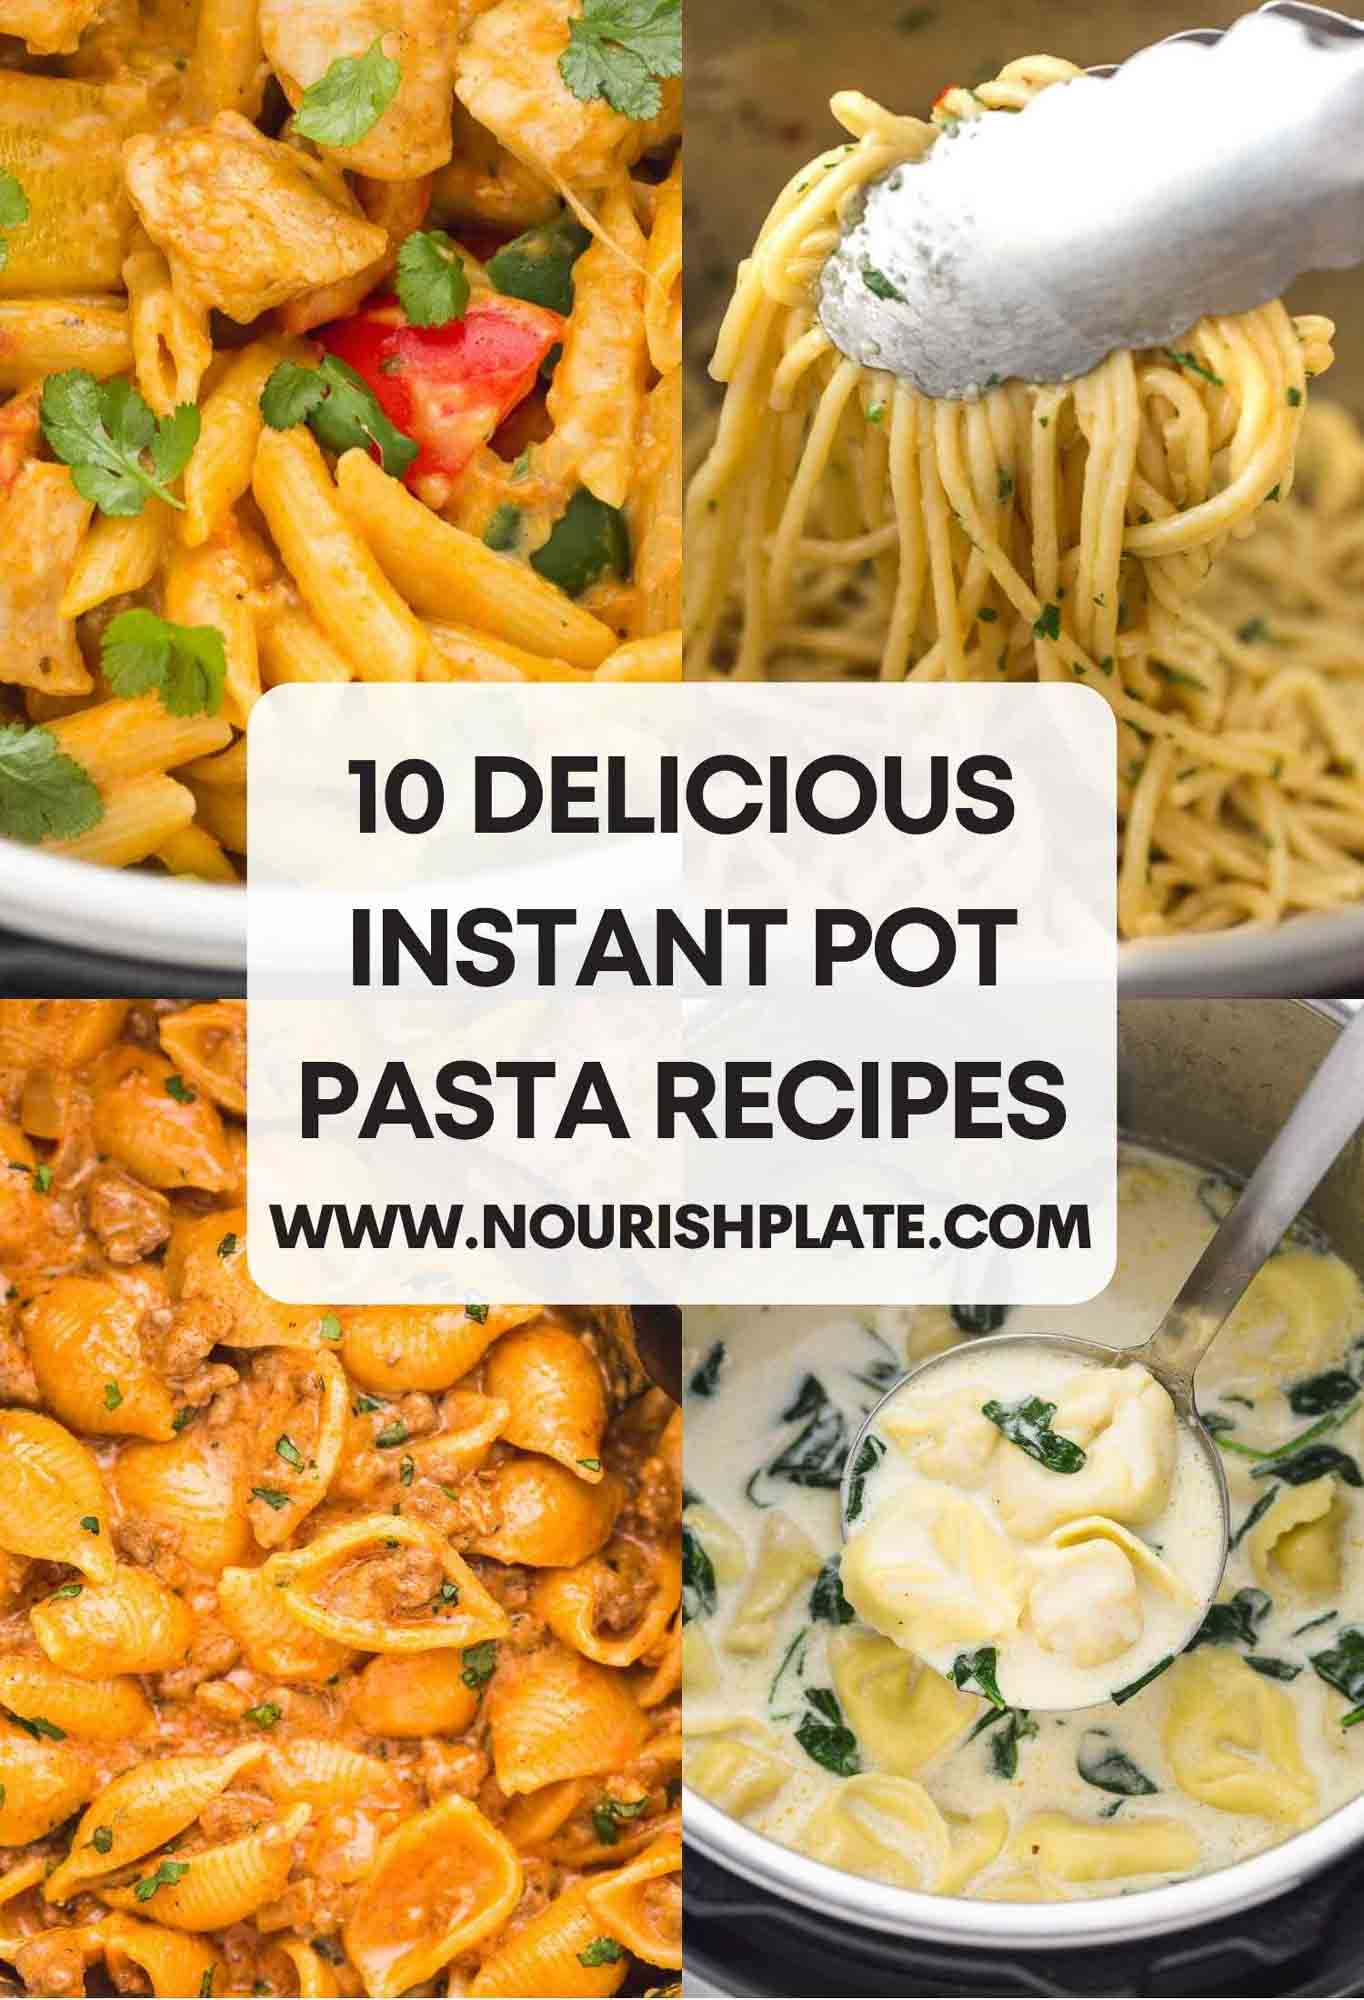 10 Delicious Instant Pot Pasta Recipes with overlay text